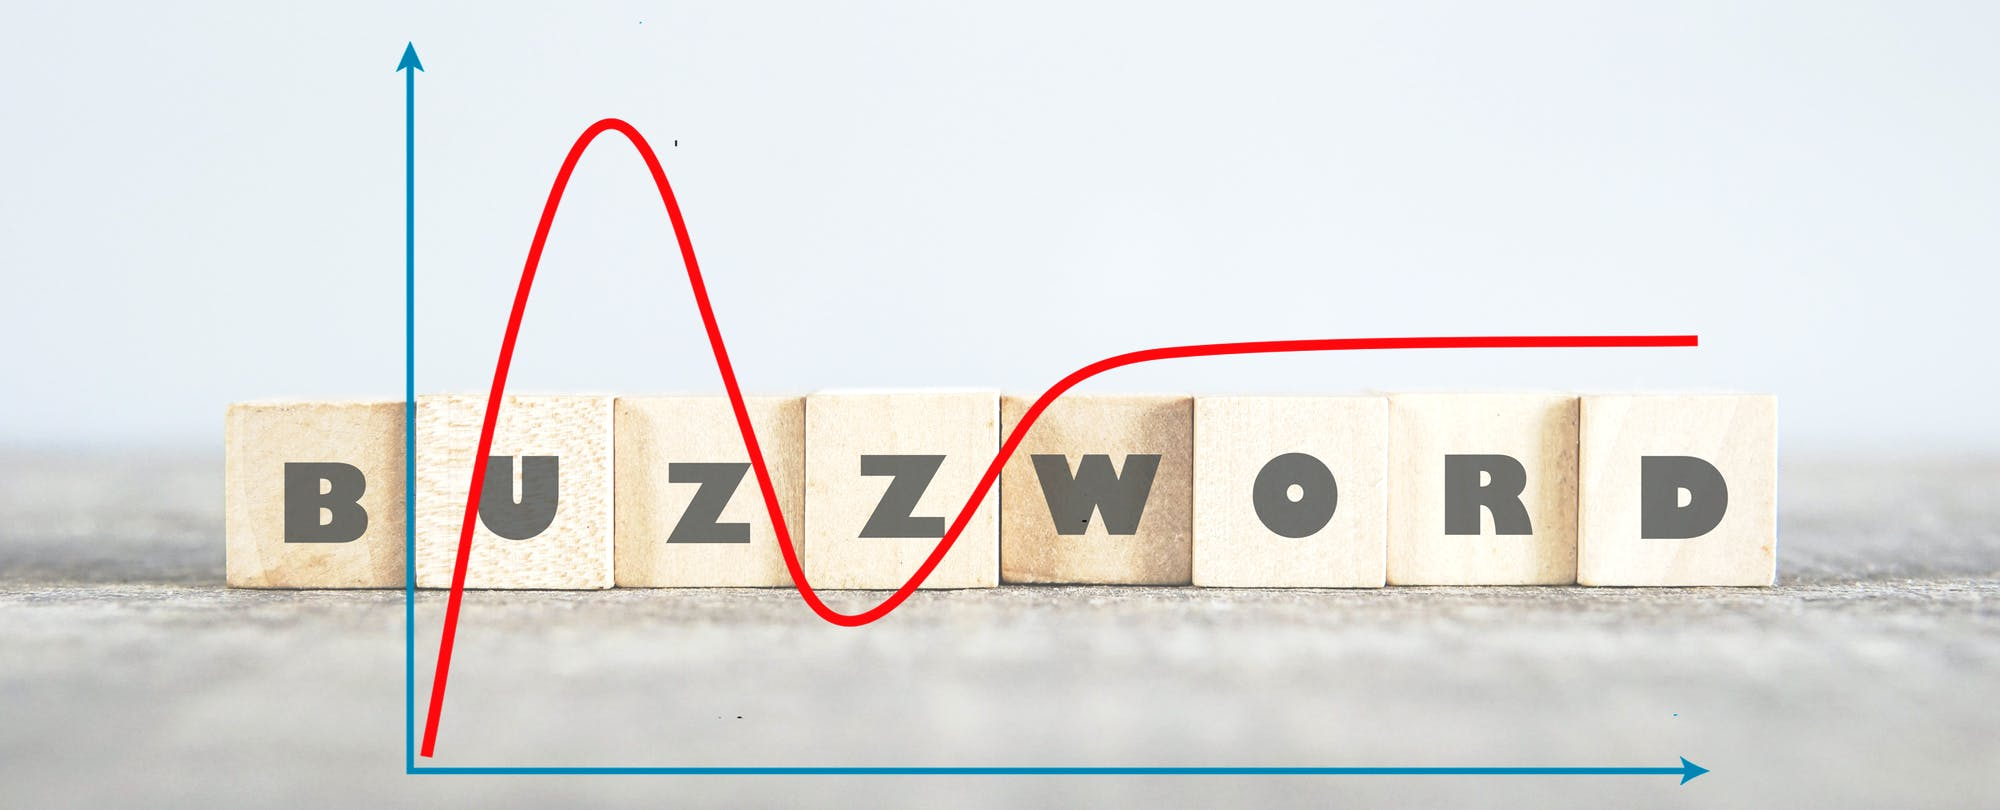 Finding 'Personalized Learning' and Other Edtech Buzzwords on the Gartner Hype Cycle